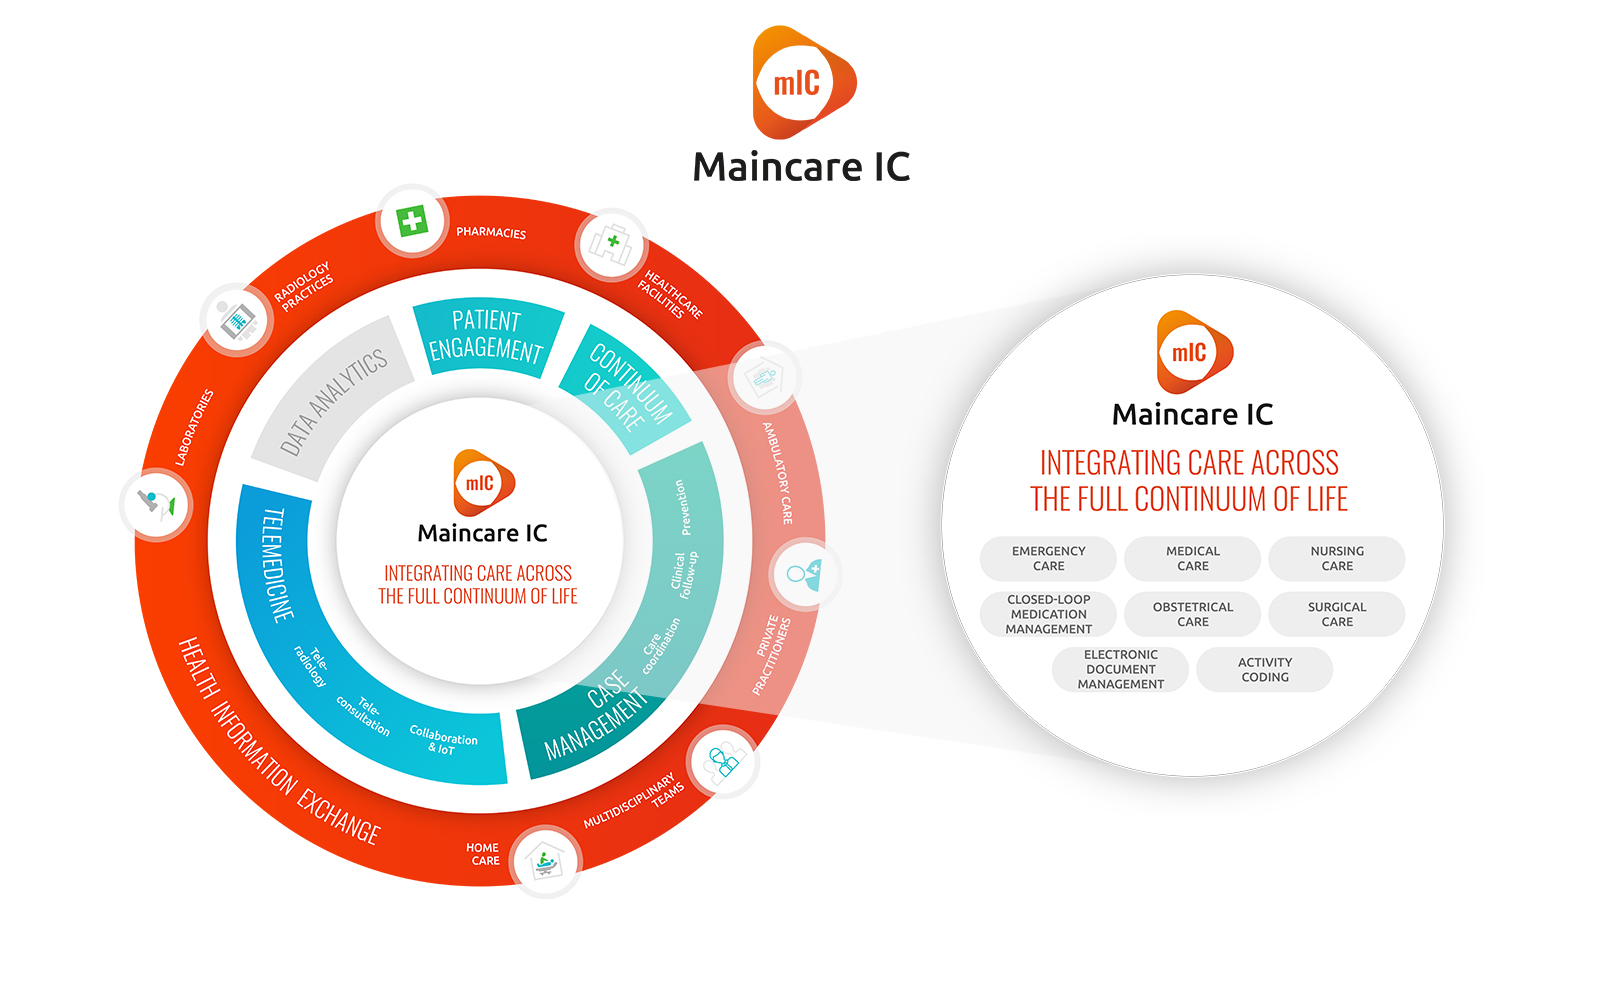 Maincare IC schematic illustration